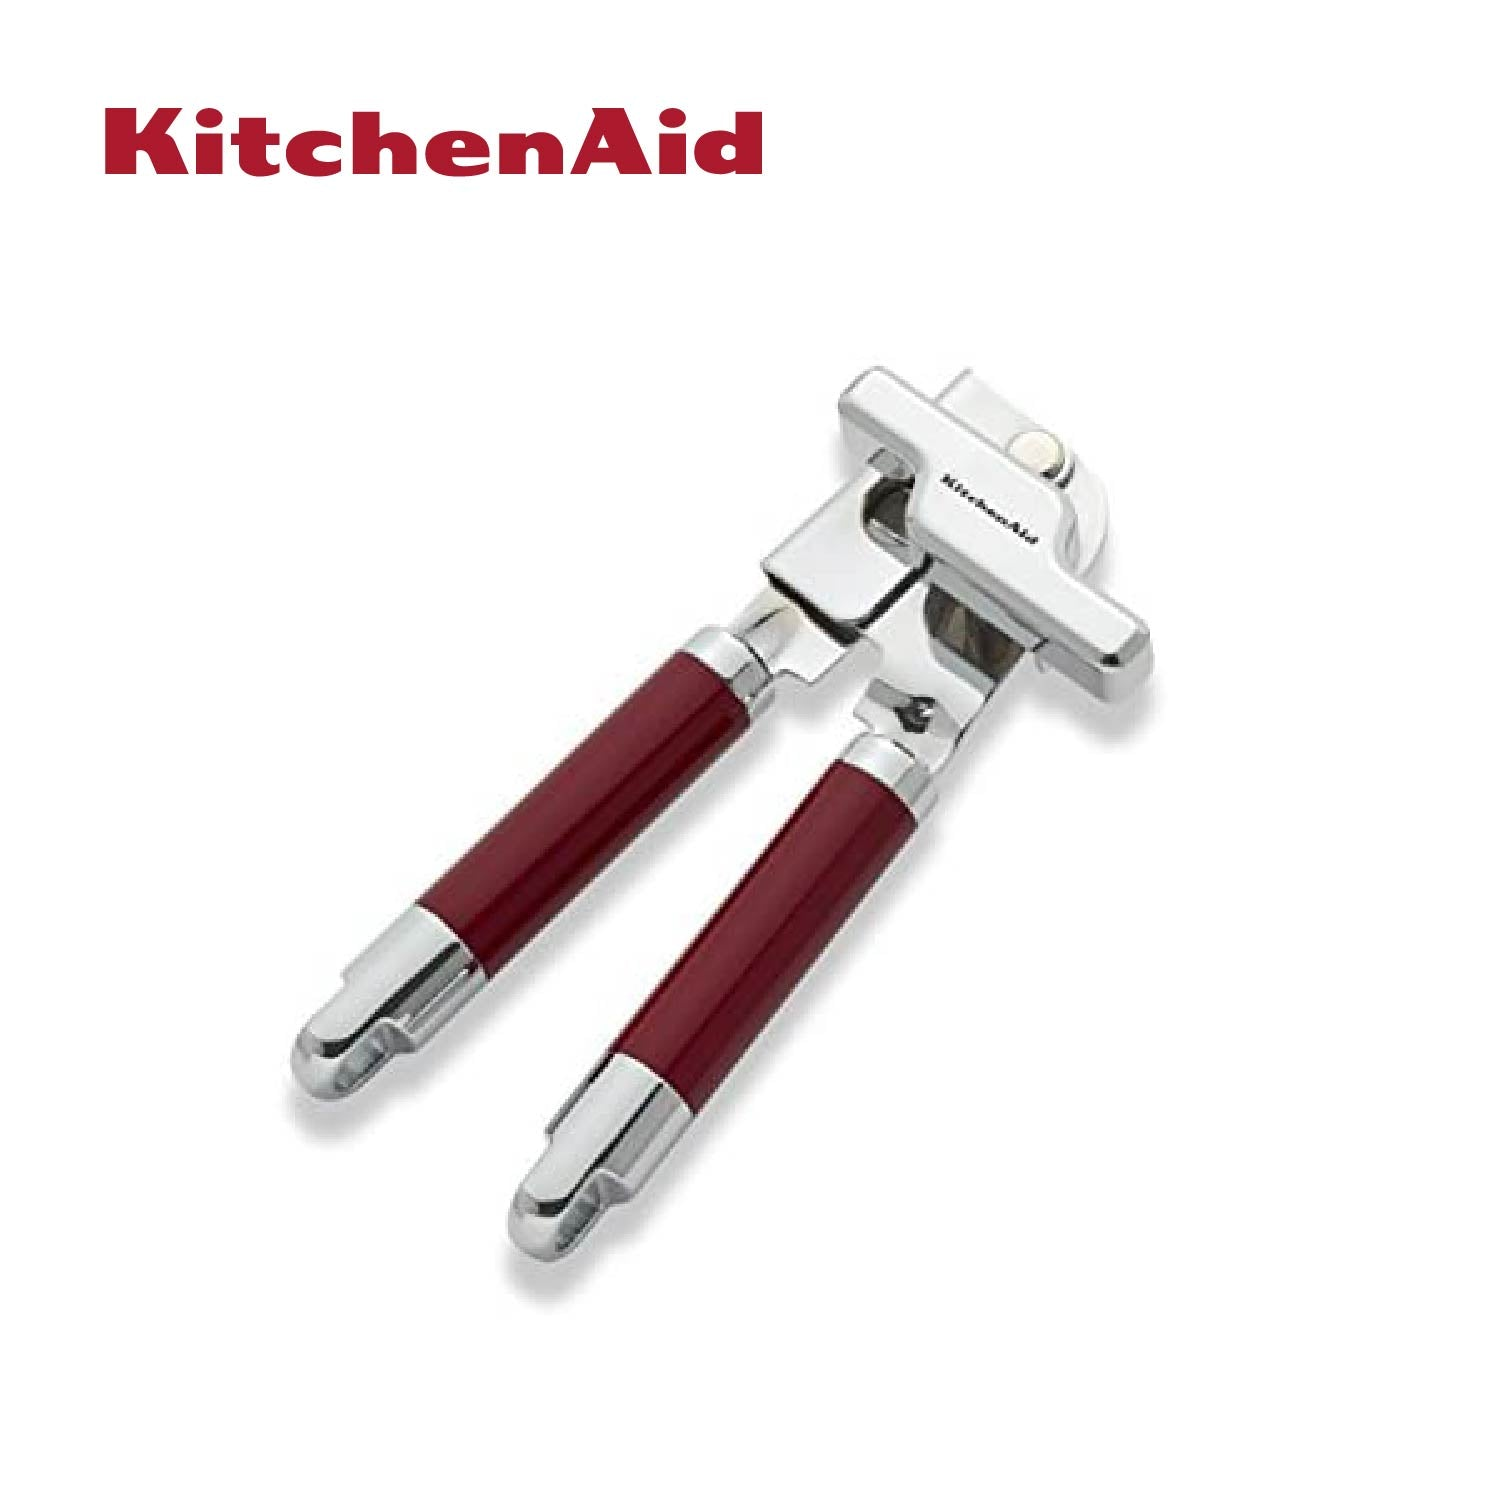 Stainless Steel Can Opener (Red)